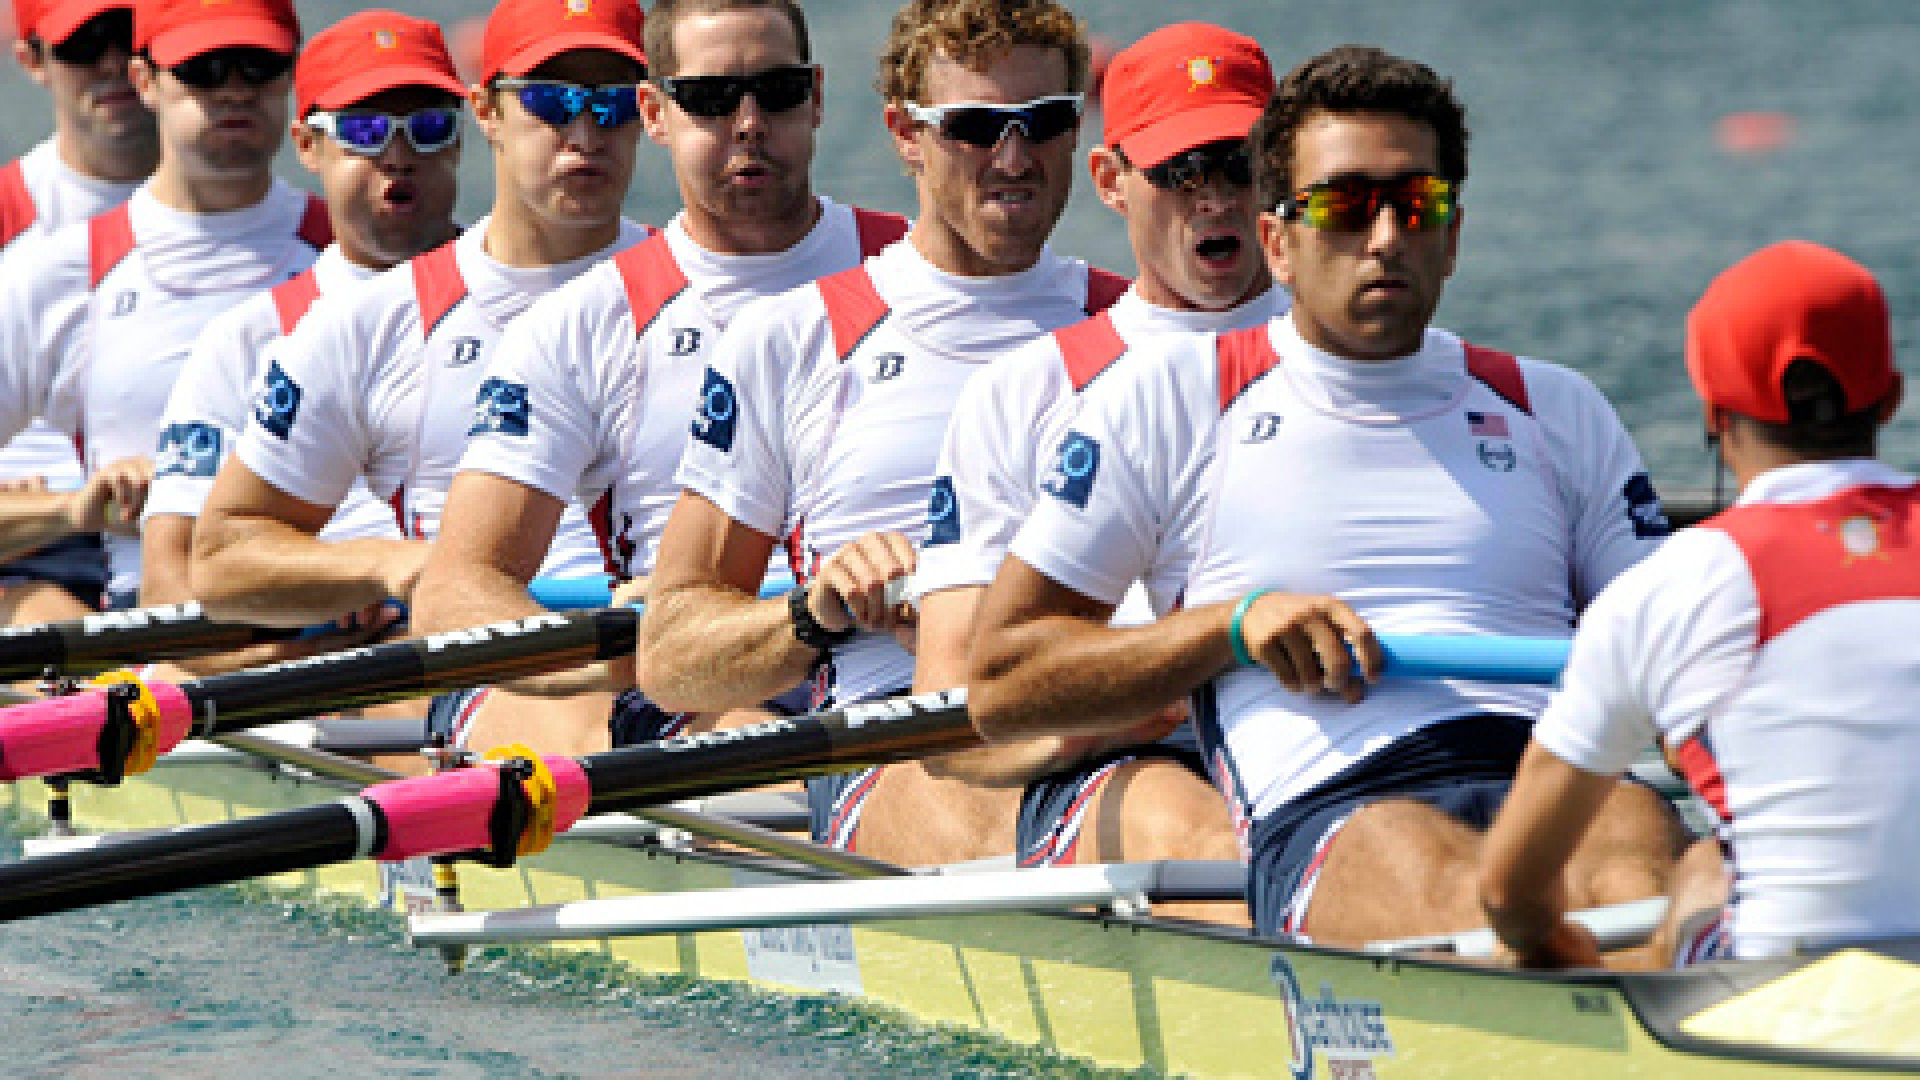 U.S. rowing team compete during the men's eight semi-final at the World Rowing Championships in Bled August 31, 2011.